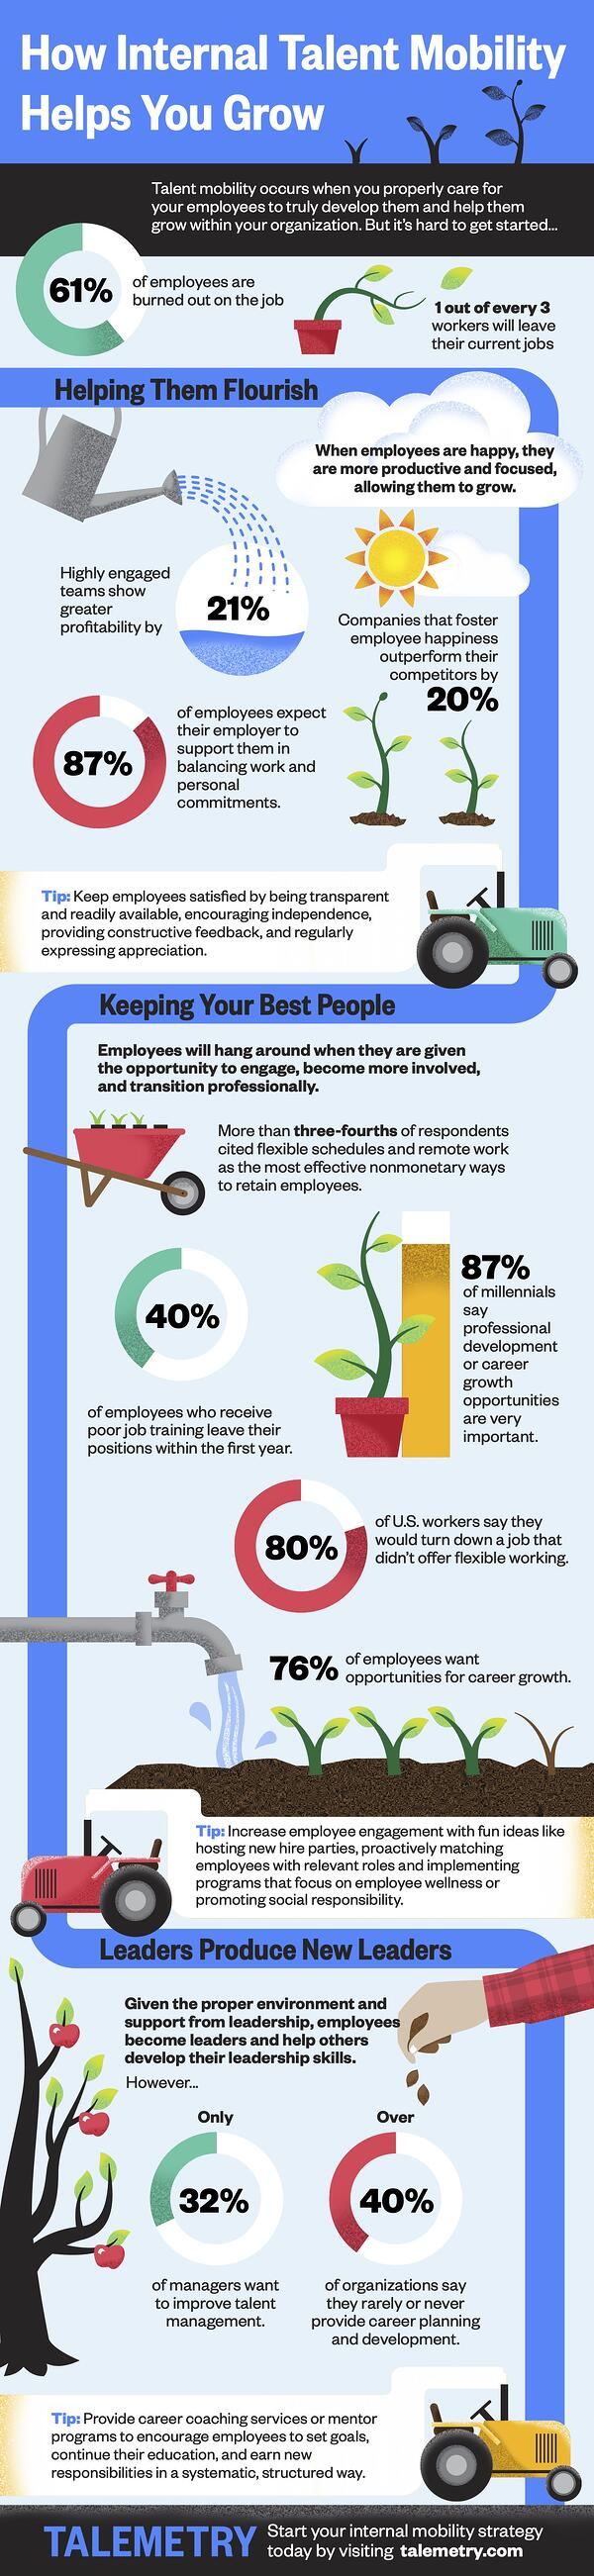 TY Internal Mobility Infographic - FINAL